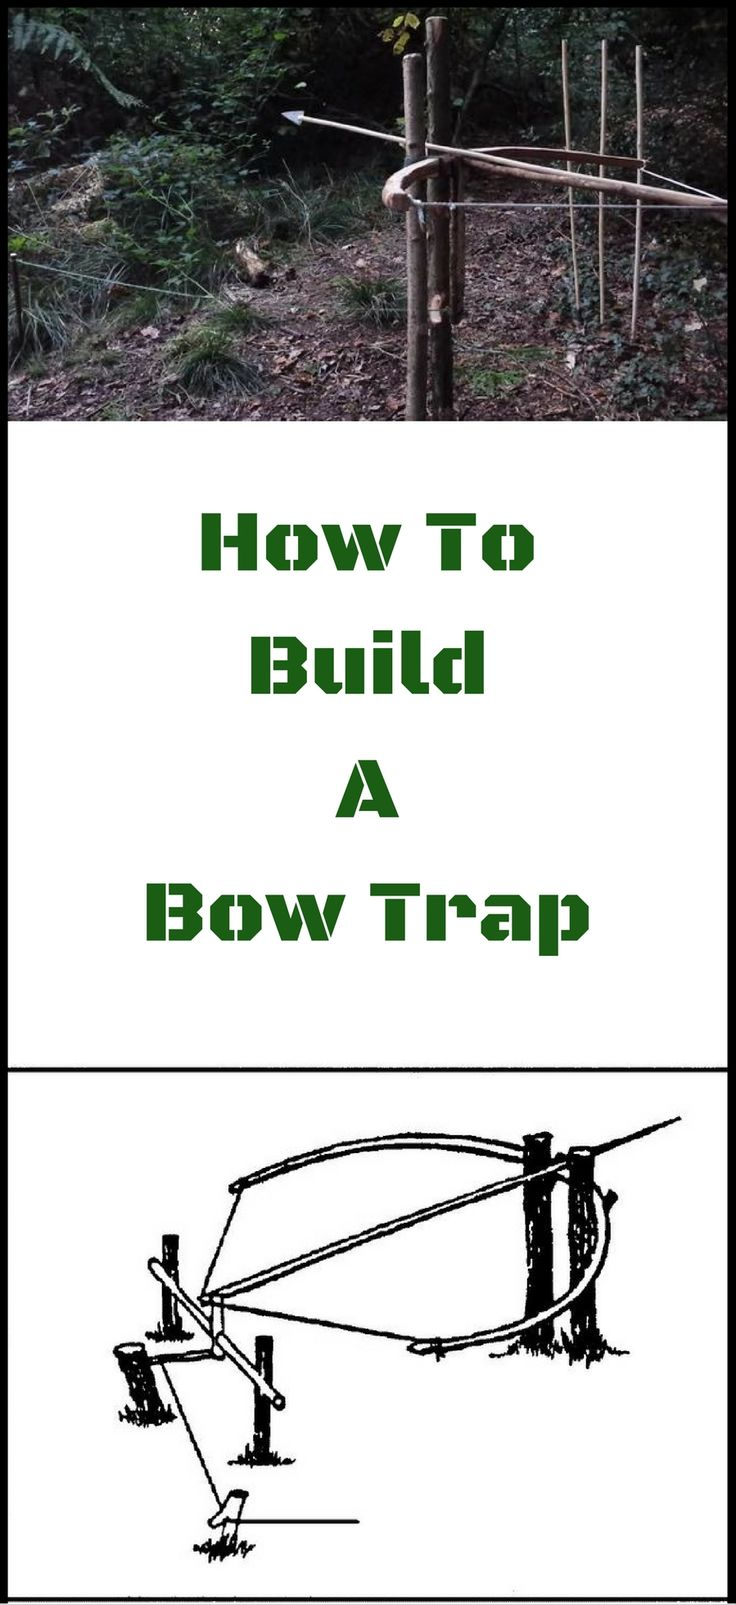 How To Build a Bow Trap http://vid.staged.com/8Oet